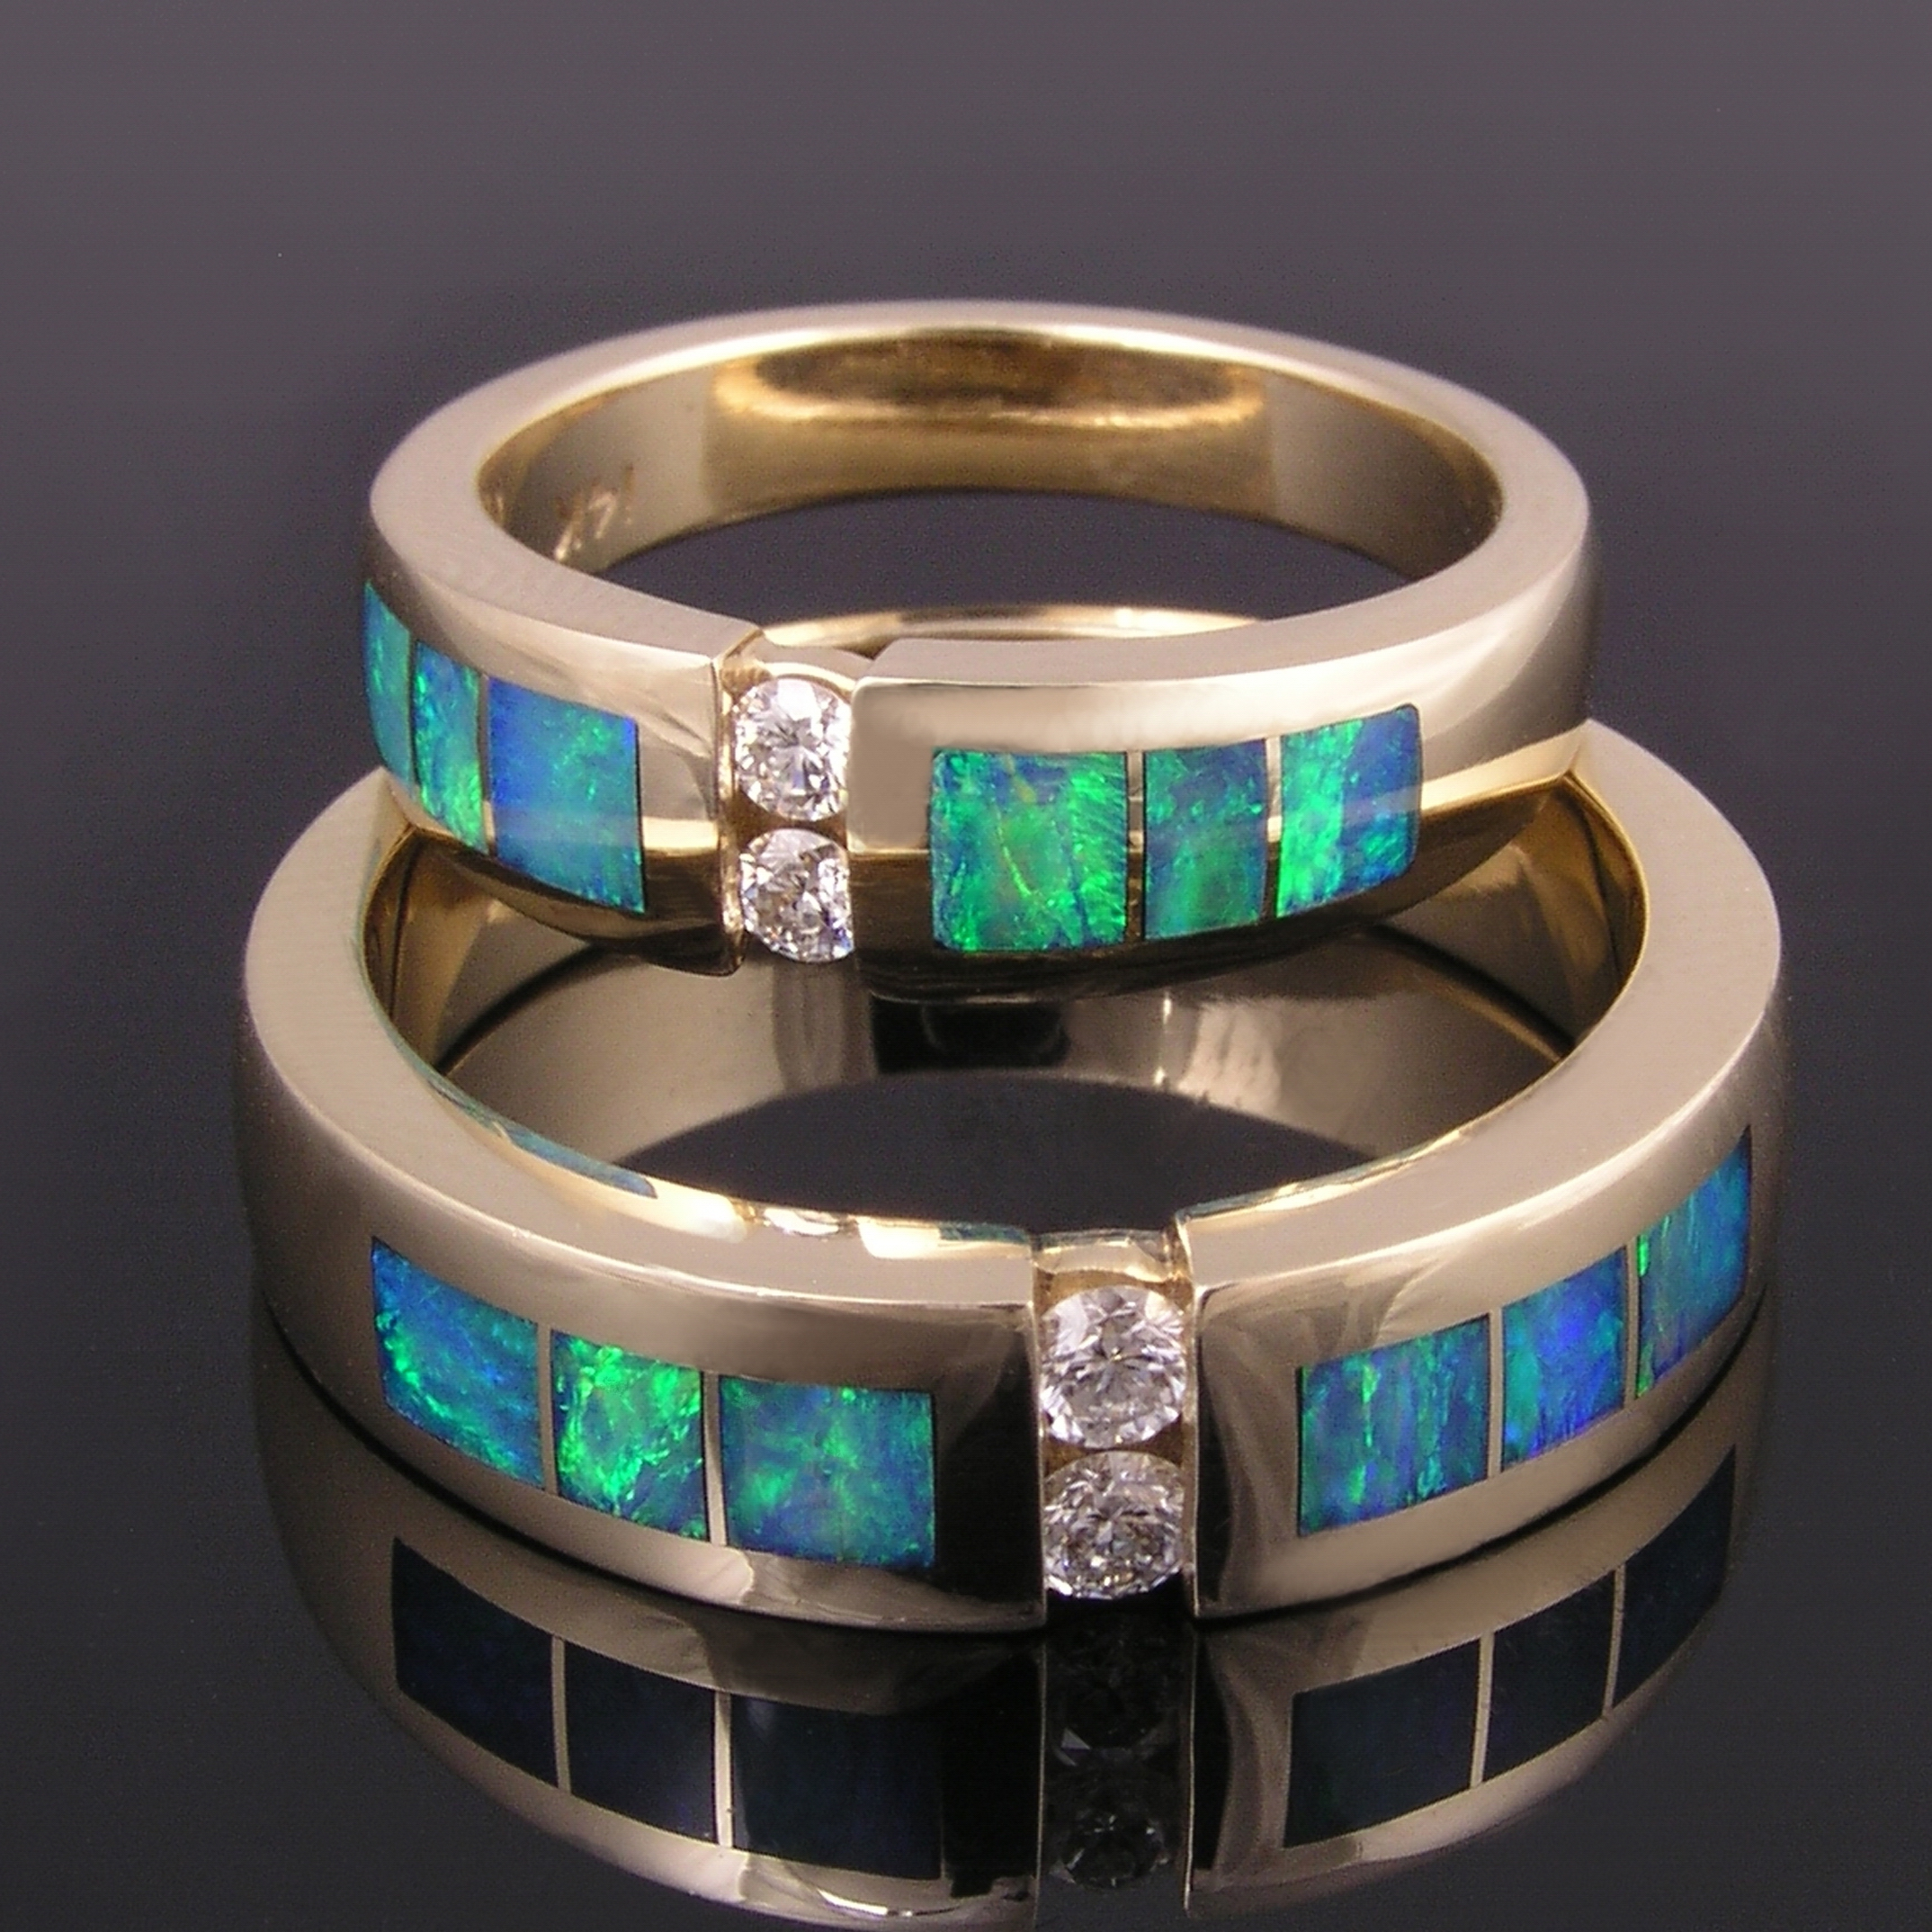 Australian opal inlay rings with diamond accents in 14k gold by Hileman